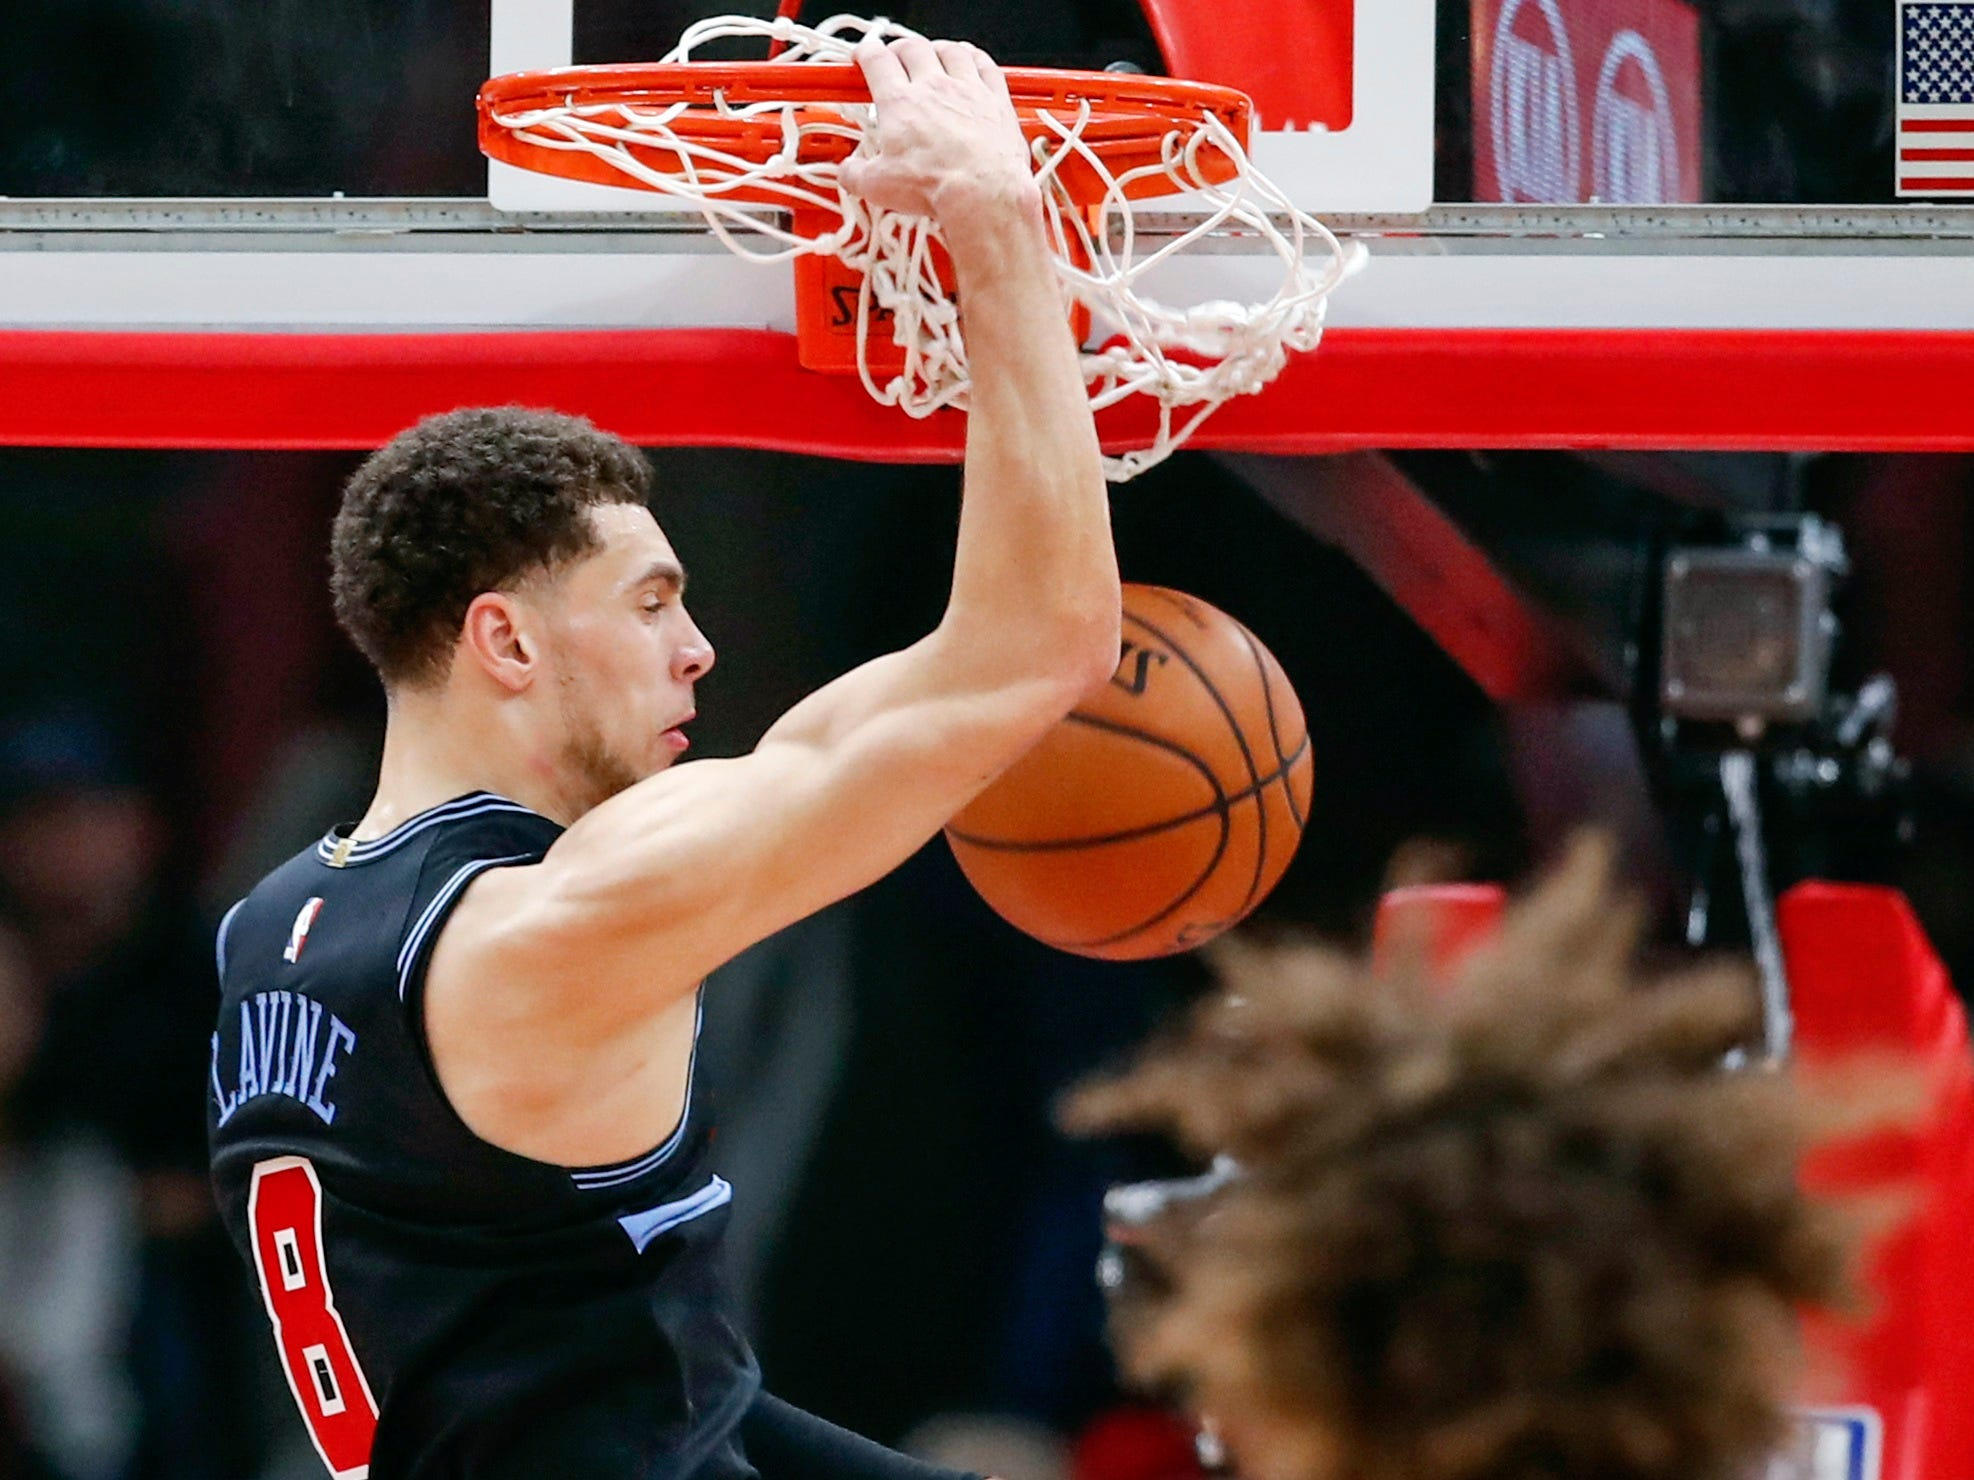 Nov. 23: Bulls guard Zach LaVine throws down a monster one-handed slam during the second half against the Heat in Miami.